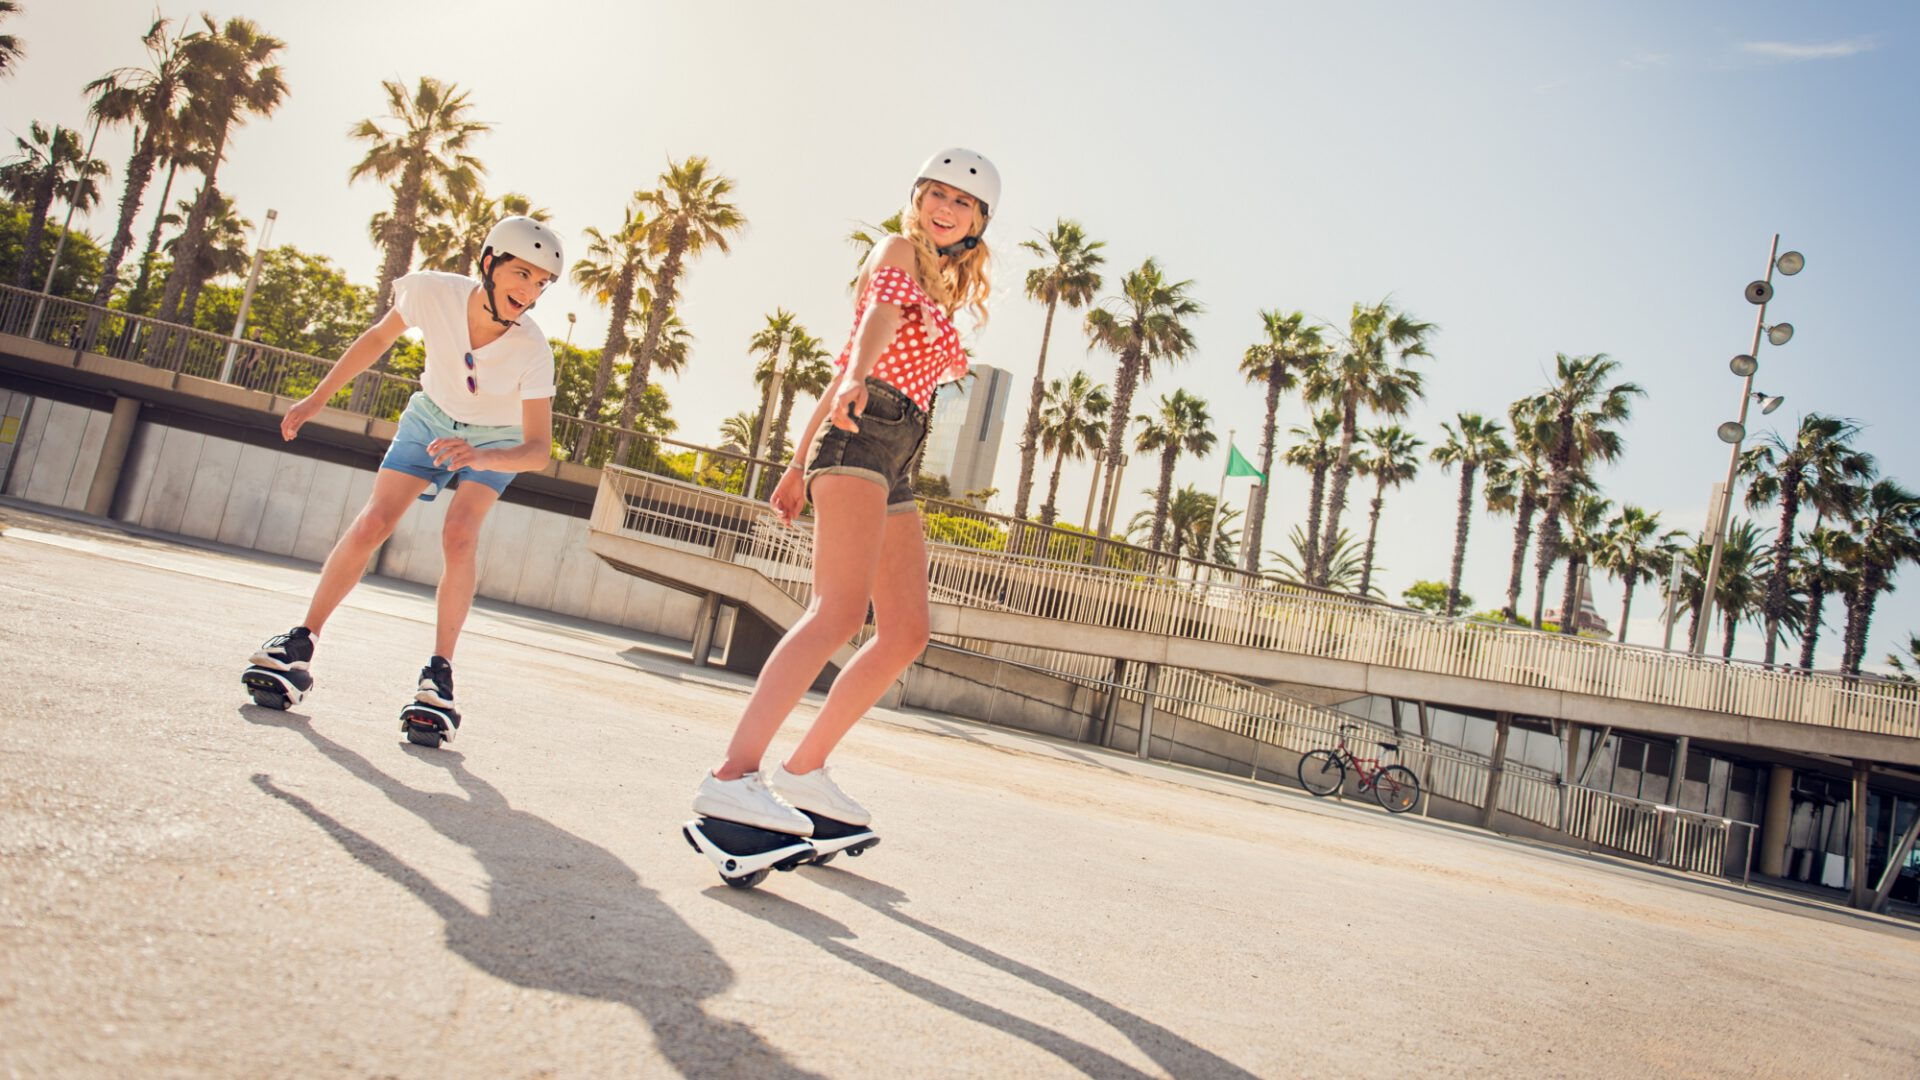 [hero] Two separate self-balancing e-Skates